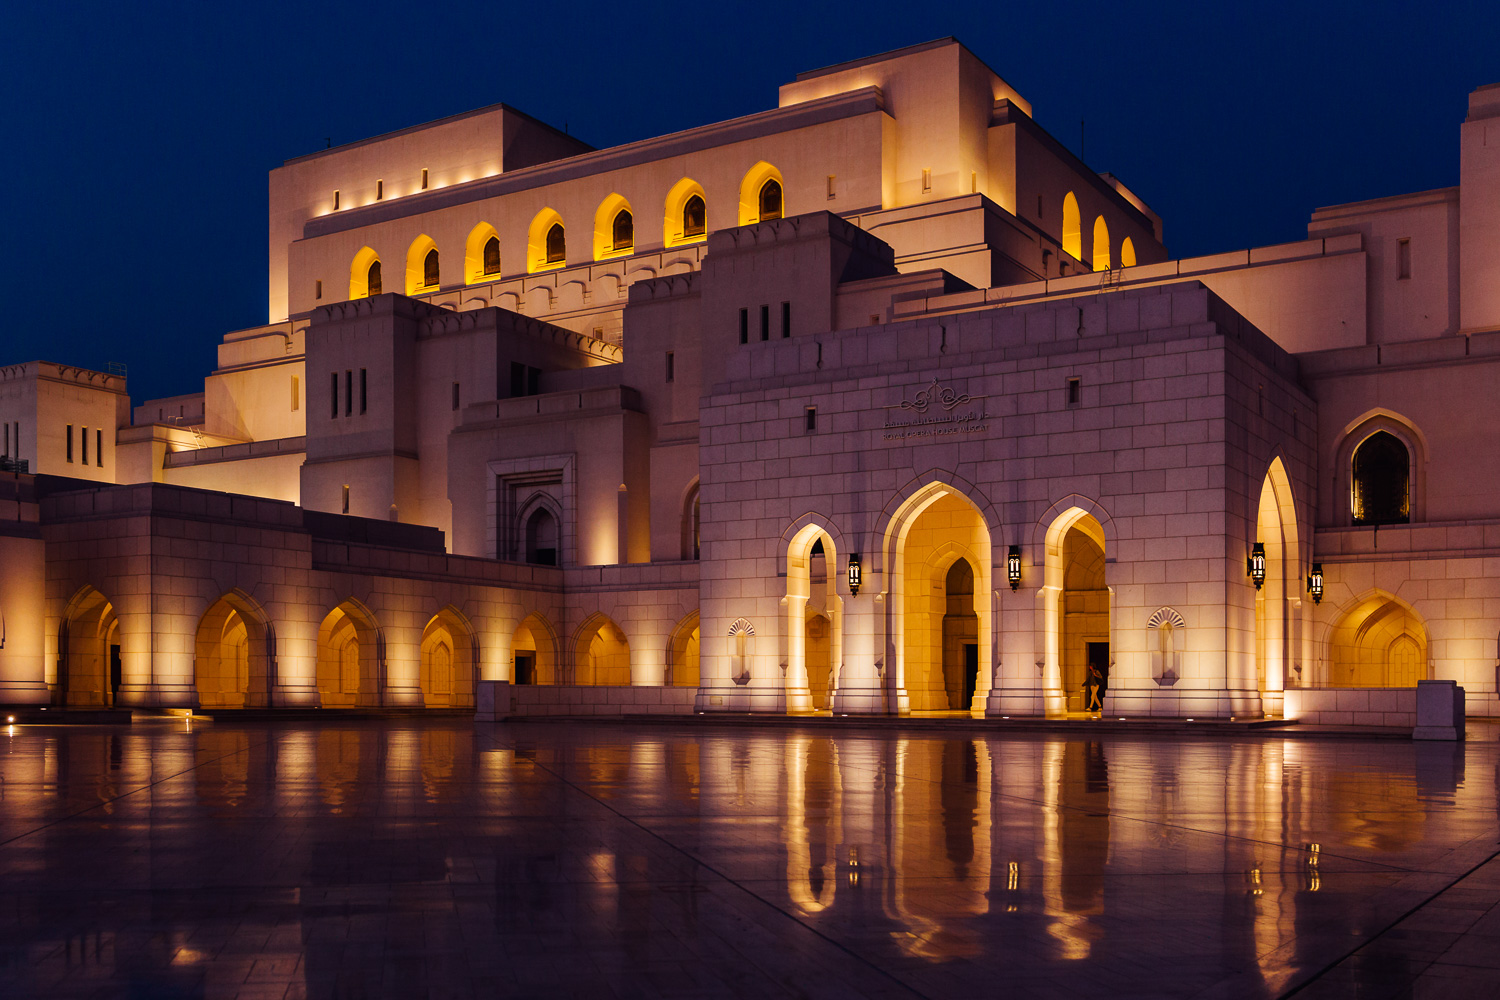 Architecture-Building-Oman-Durazo-Photography-Project-Travel.jpg